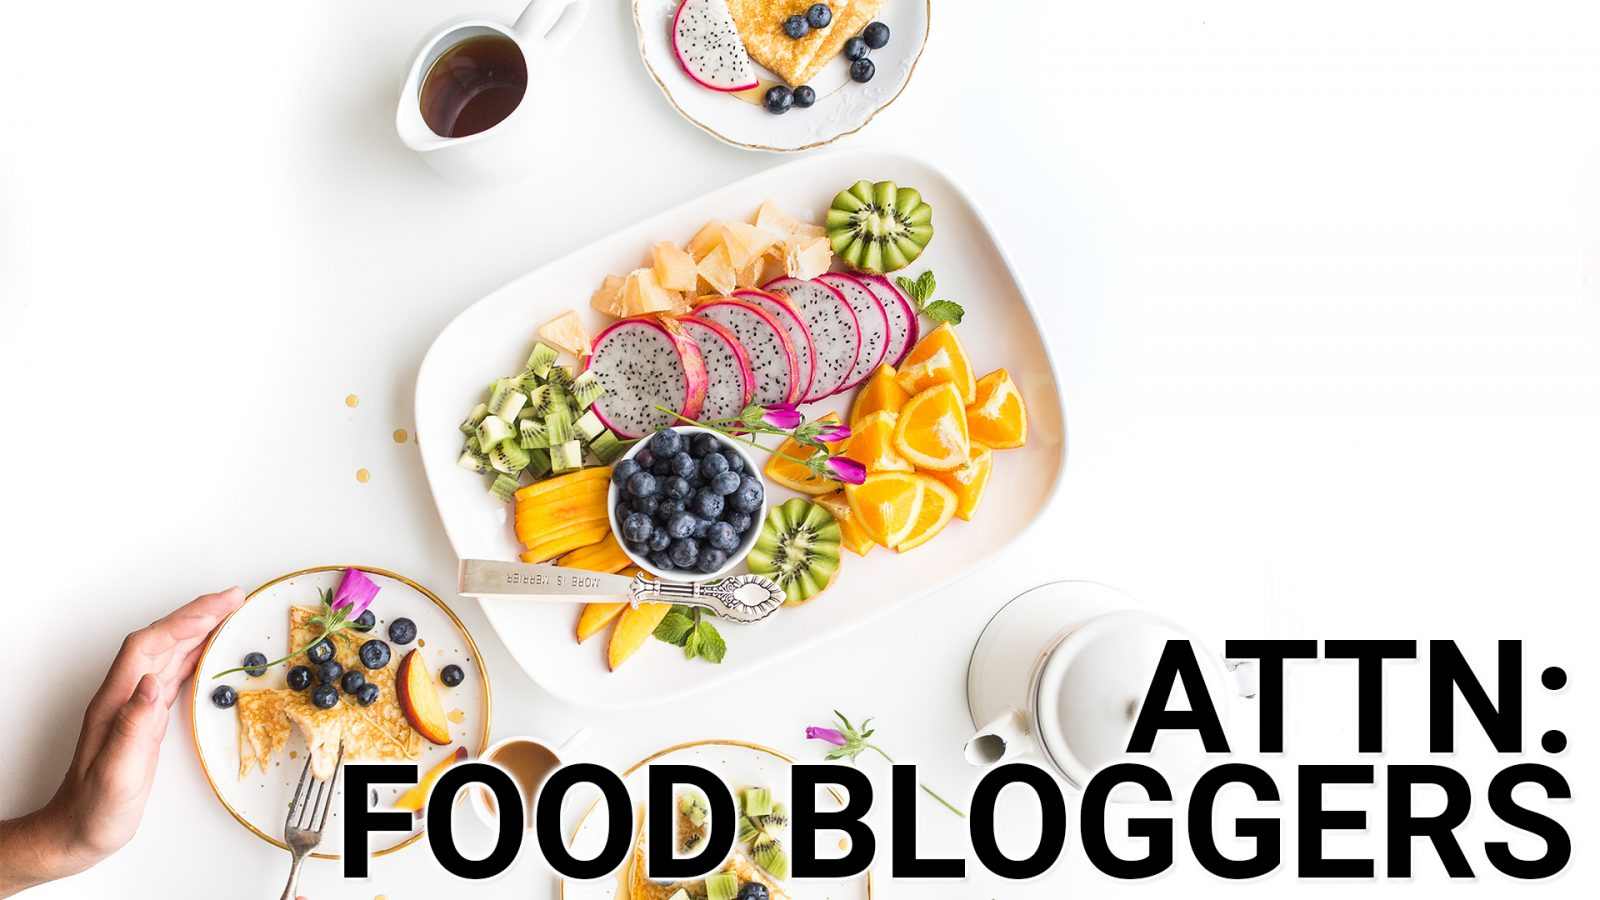 Food bloggers cut to the recipe creator hype food bloggers anchor link forumfinder Choice Image